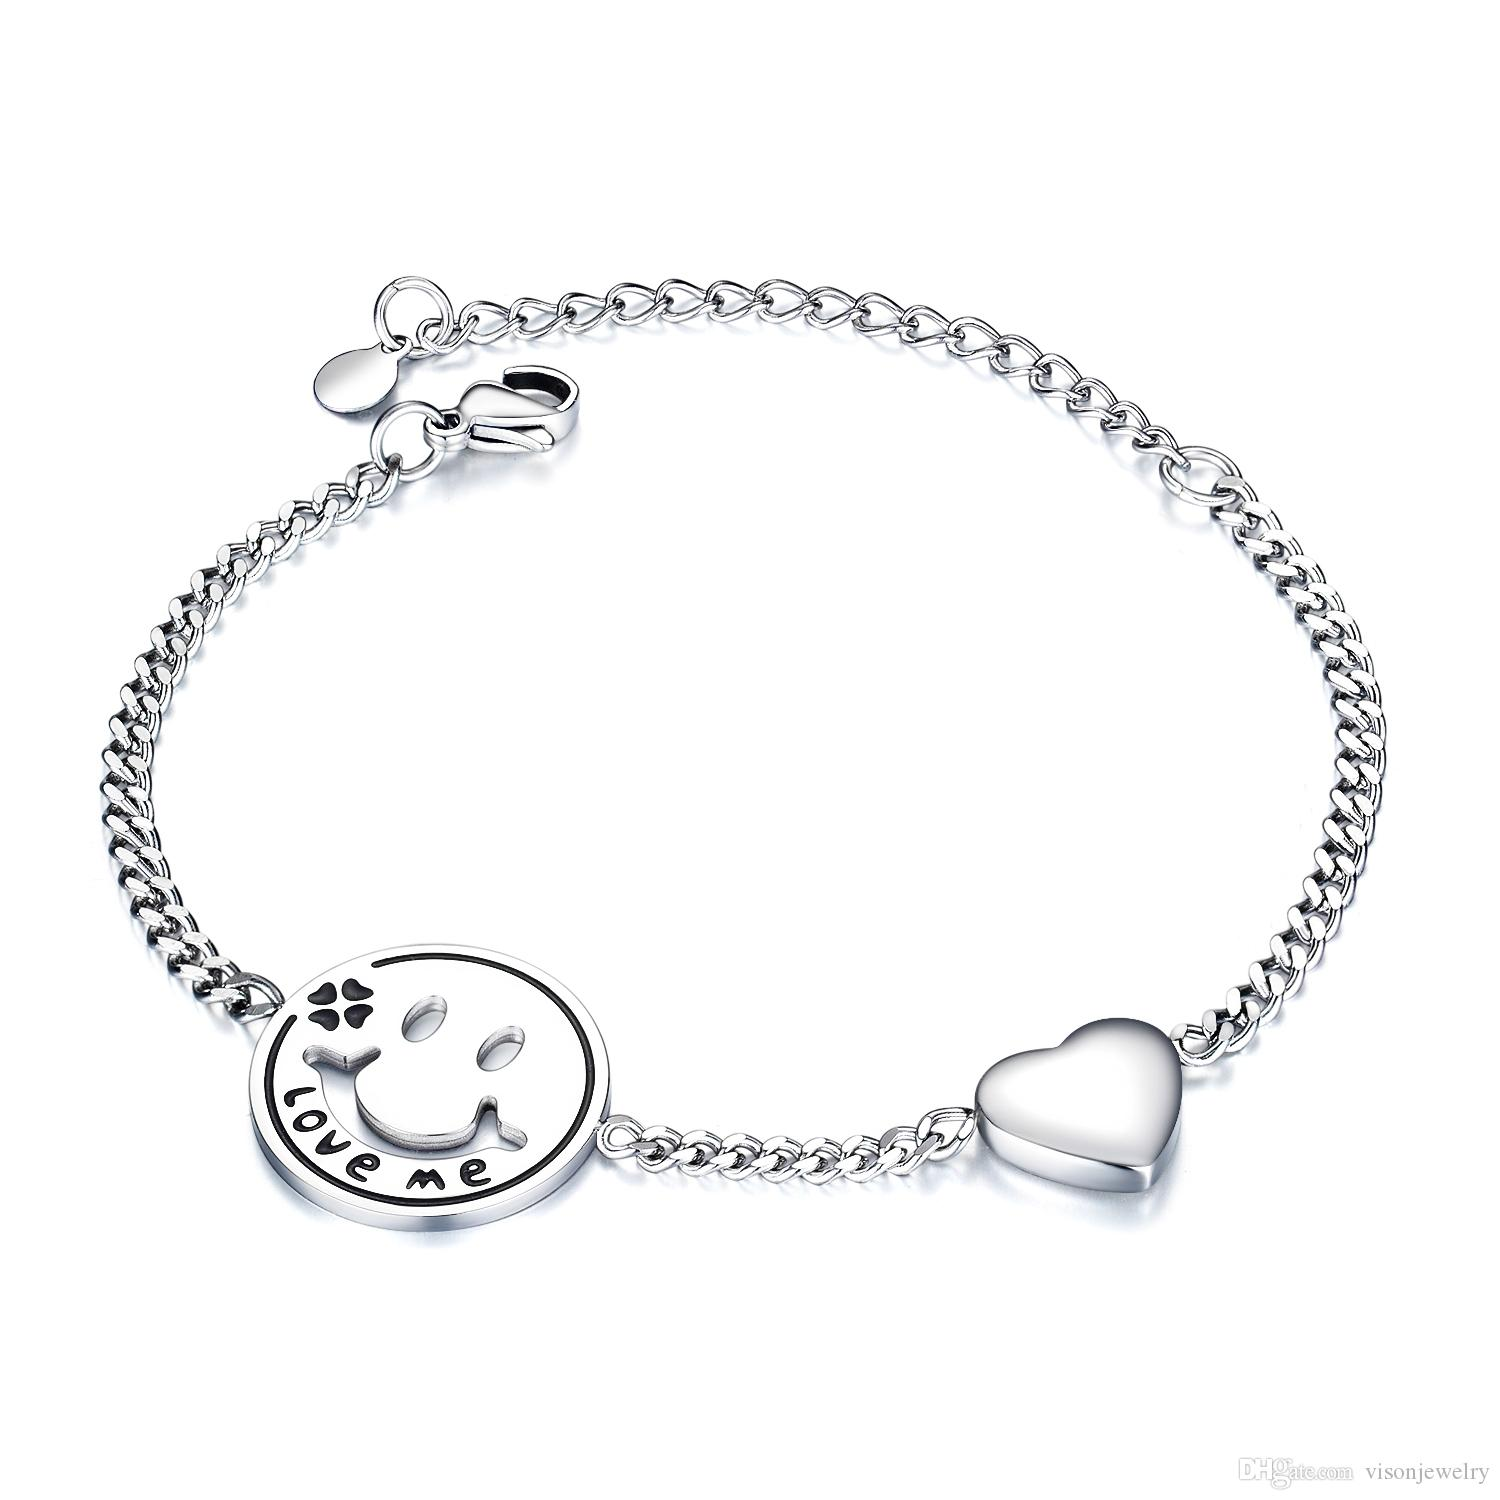 Delicate Bracelet Friend Gift Smile Face and Heart Charm Bracelet in Stainless Steel 170mm length + 50mm Extension Chain